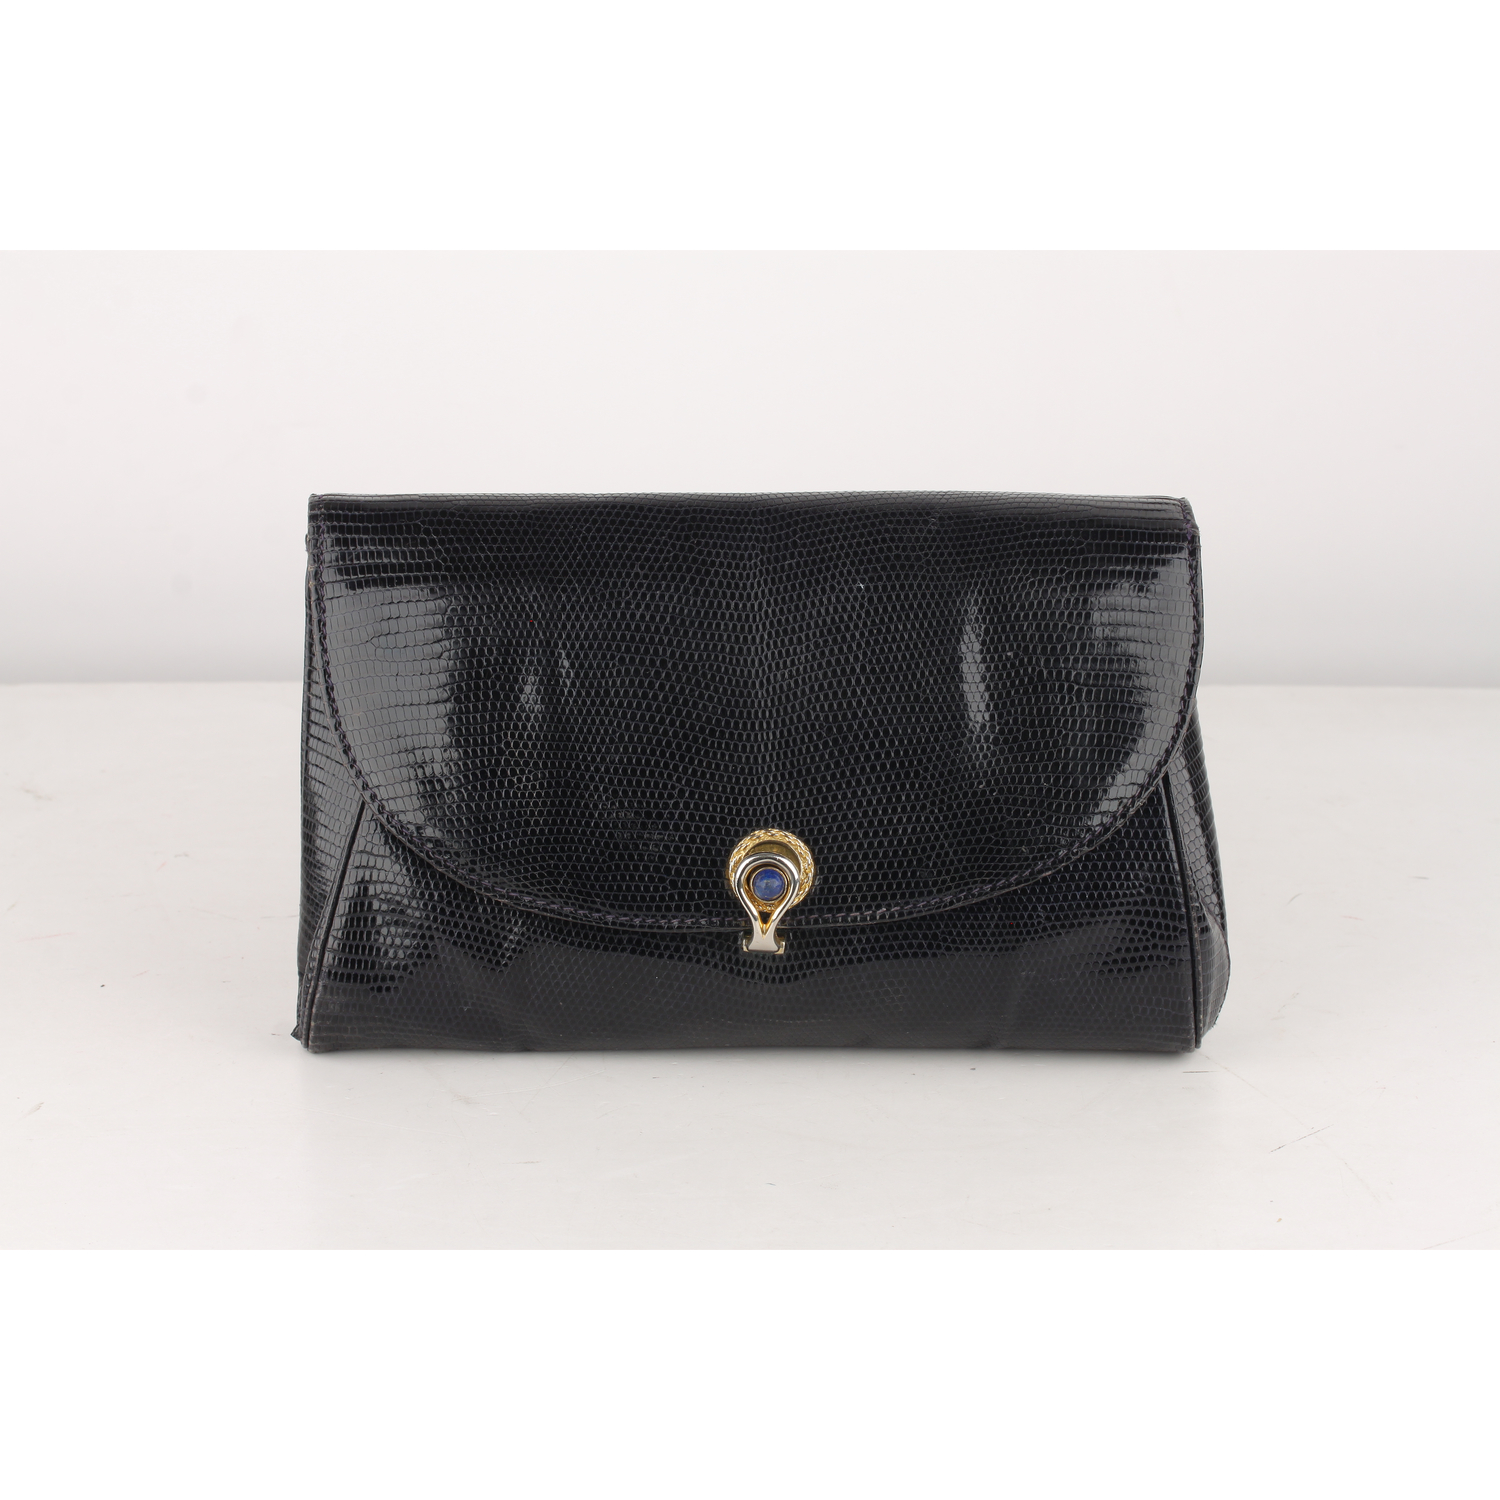 ea55464978e Image is loading Authentic-Gucci-Vintage-Navy-Blue-Lizard-Leather-Clutch-